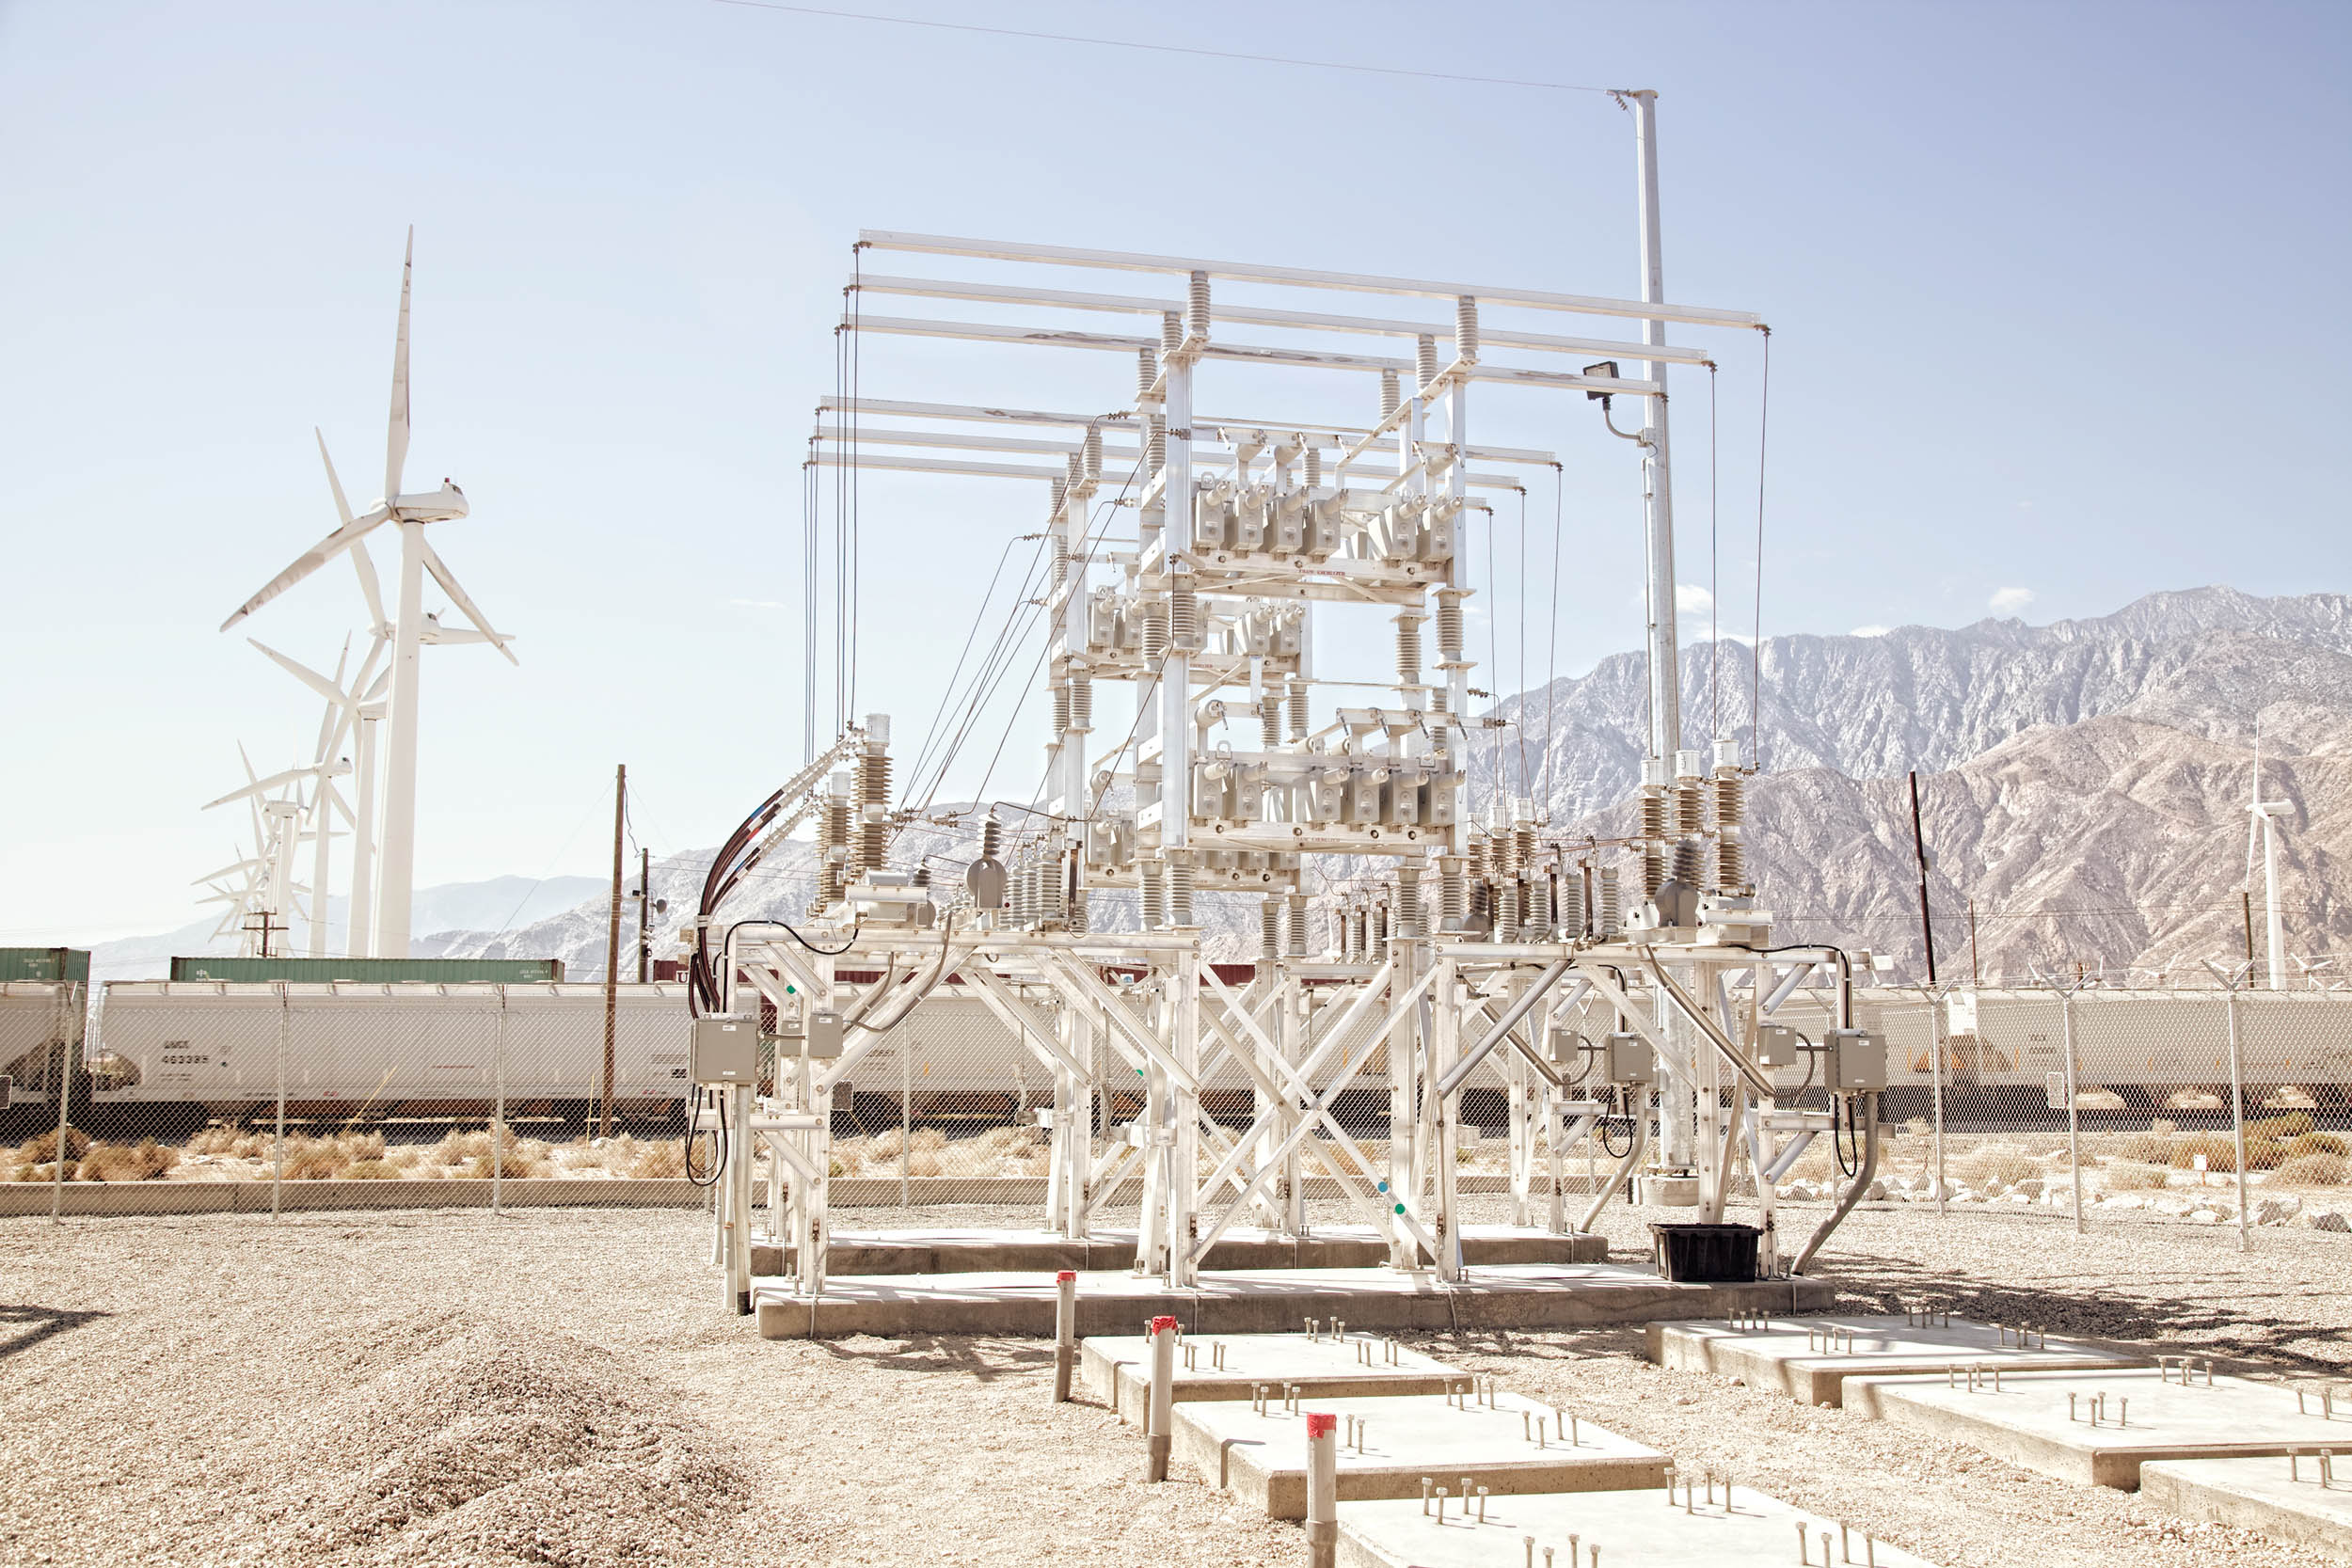 13_substation_energy_grid_construction_industrial_photographer.jpg